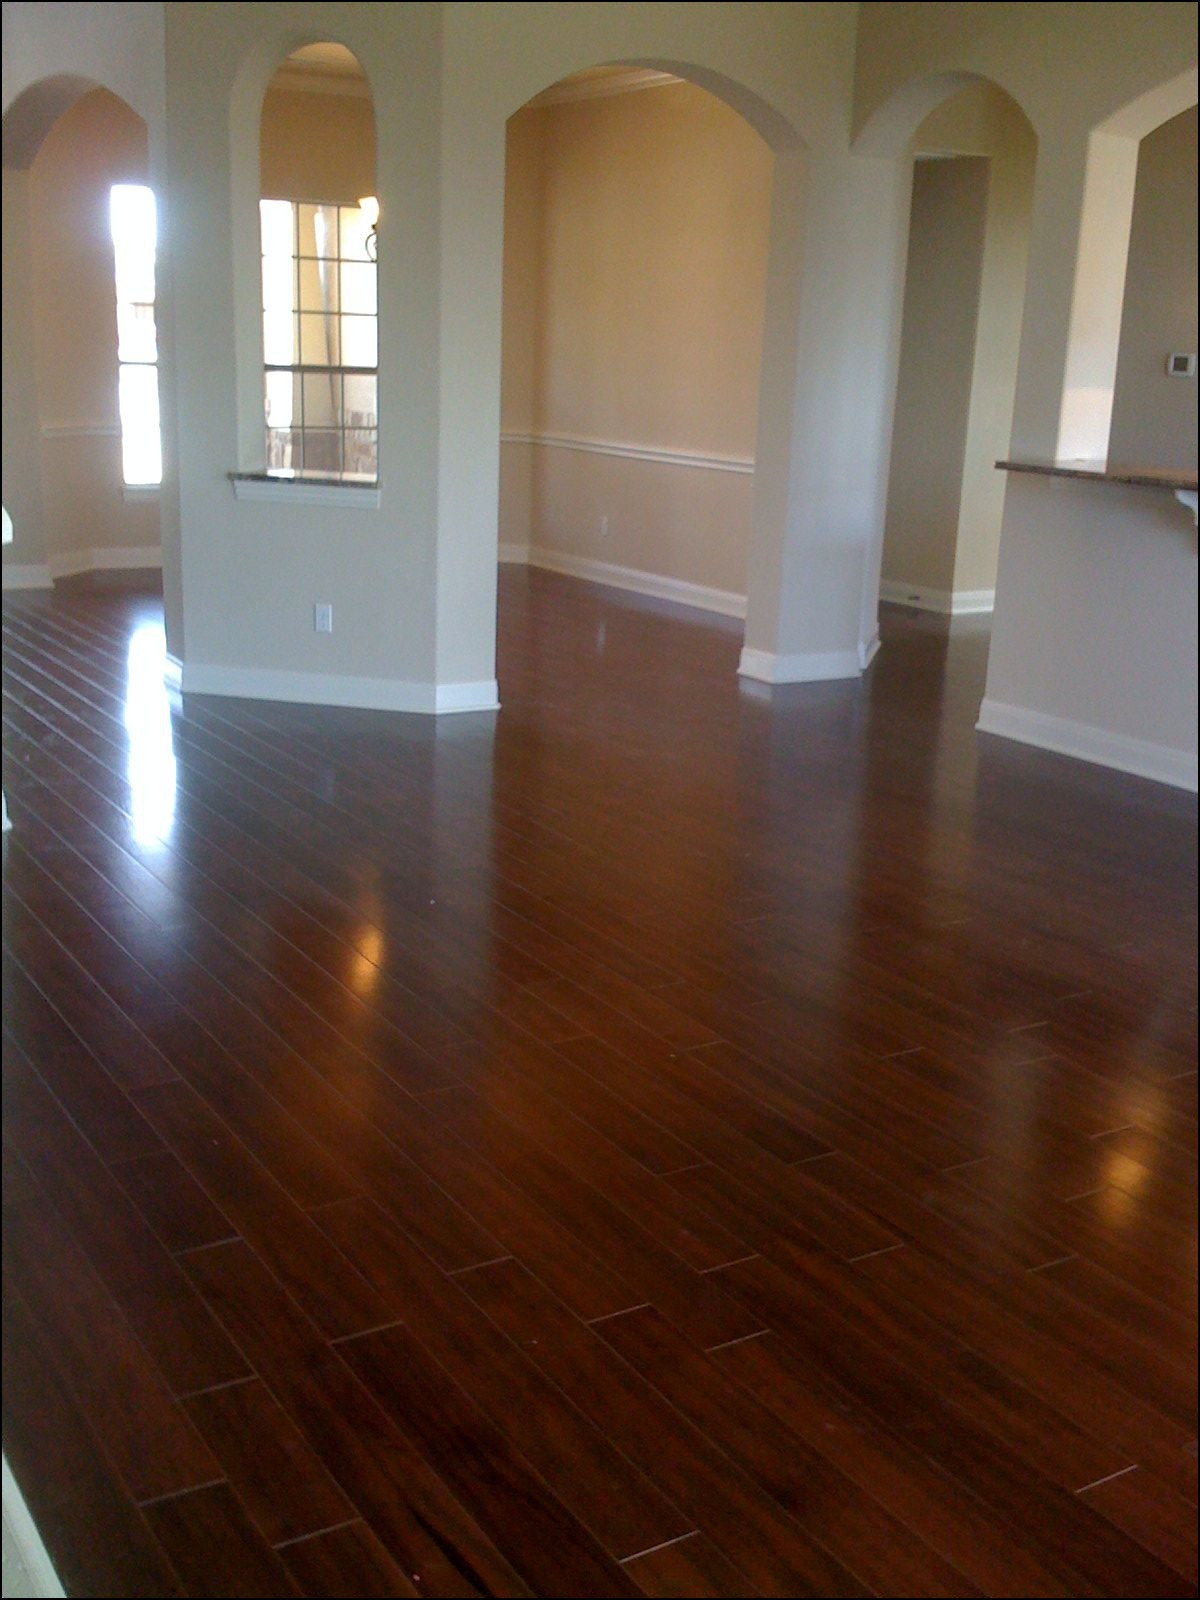 dark hardwood floors cost of hardwood flooring suppliers france flooring ideas in hardwood flooring pictures in homes galerie dark wood floors but all i can think of is